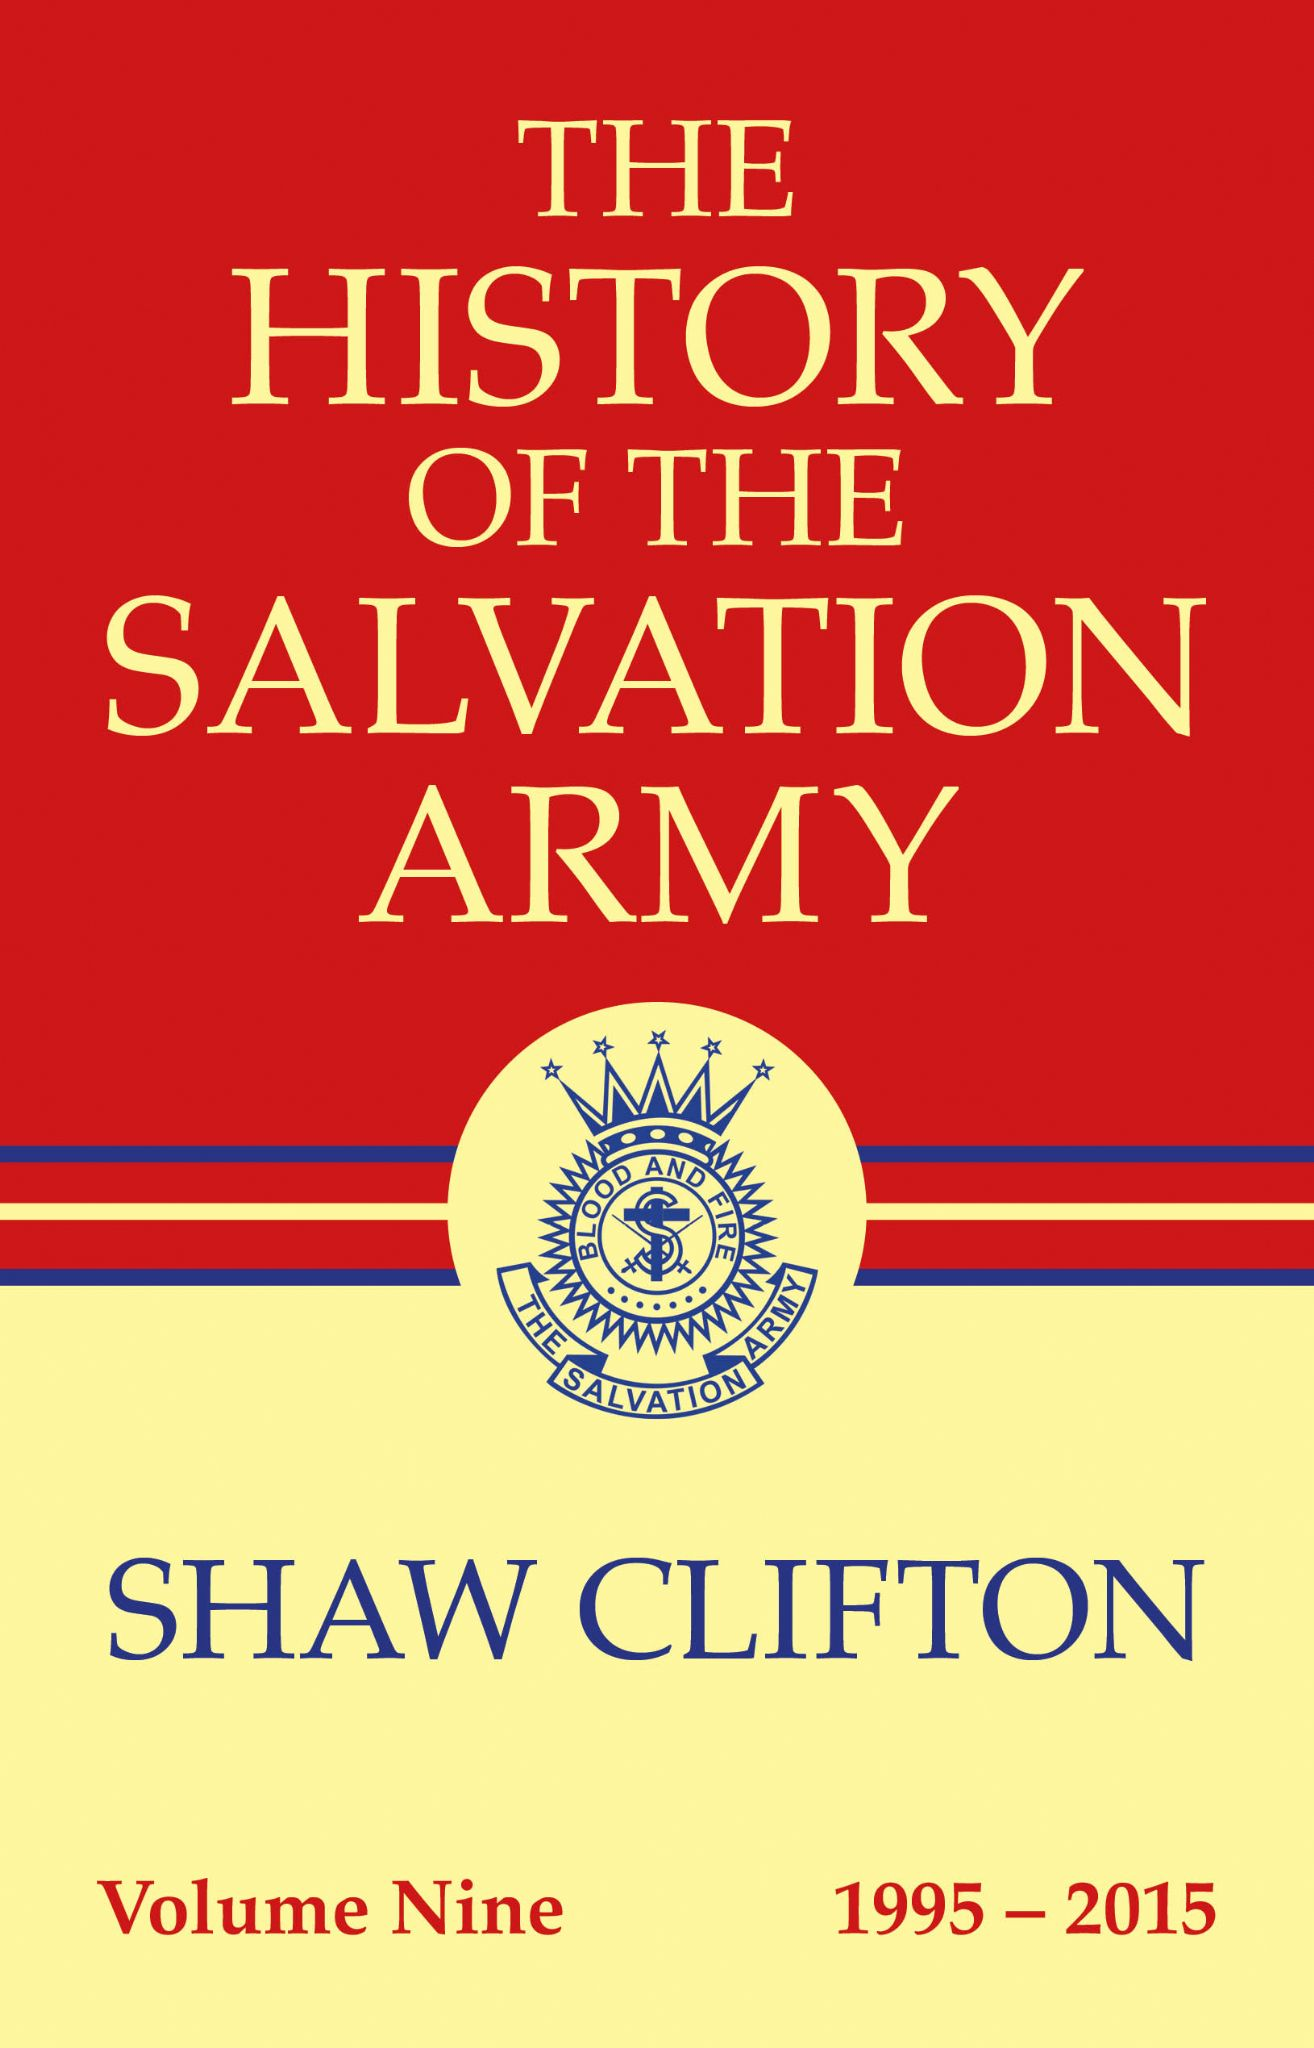 The History of the Salvation Army Vol. 9